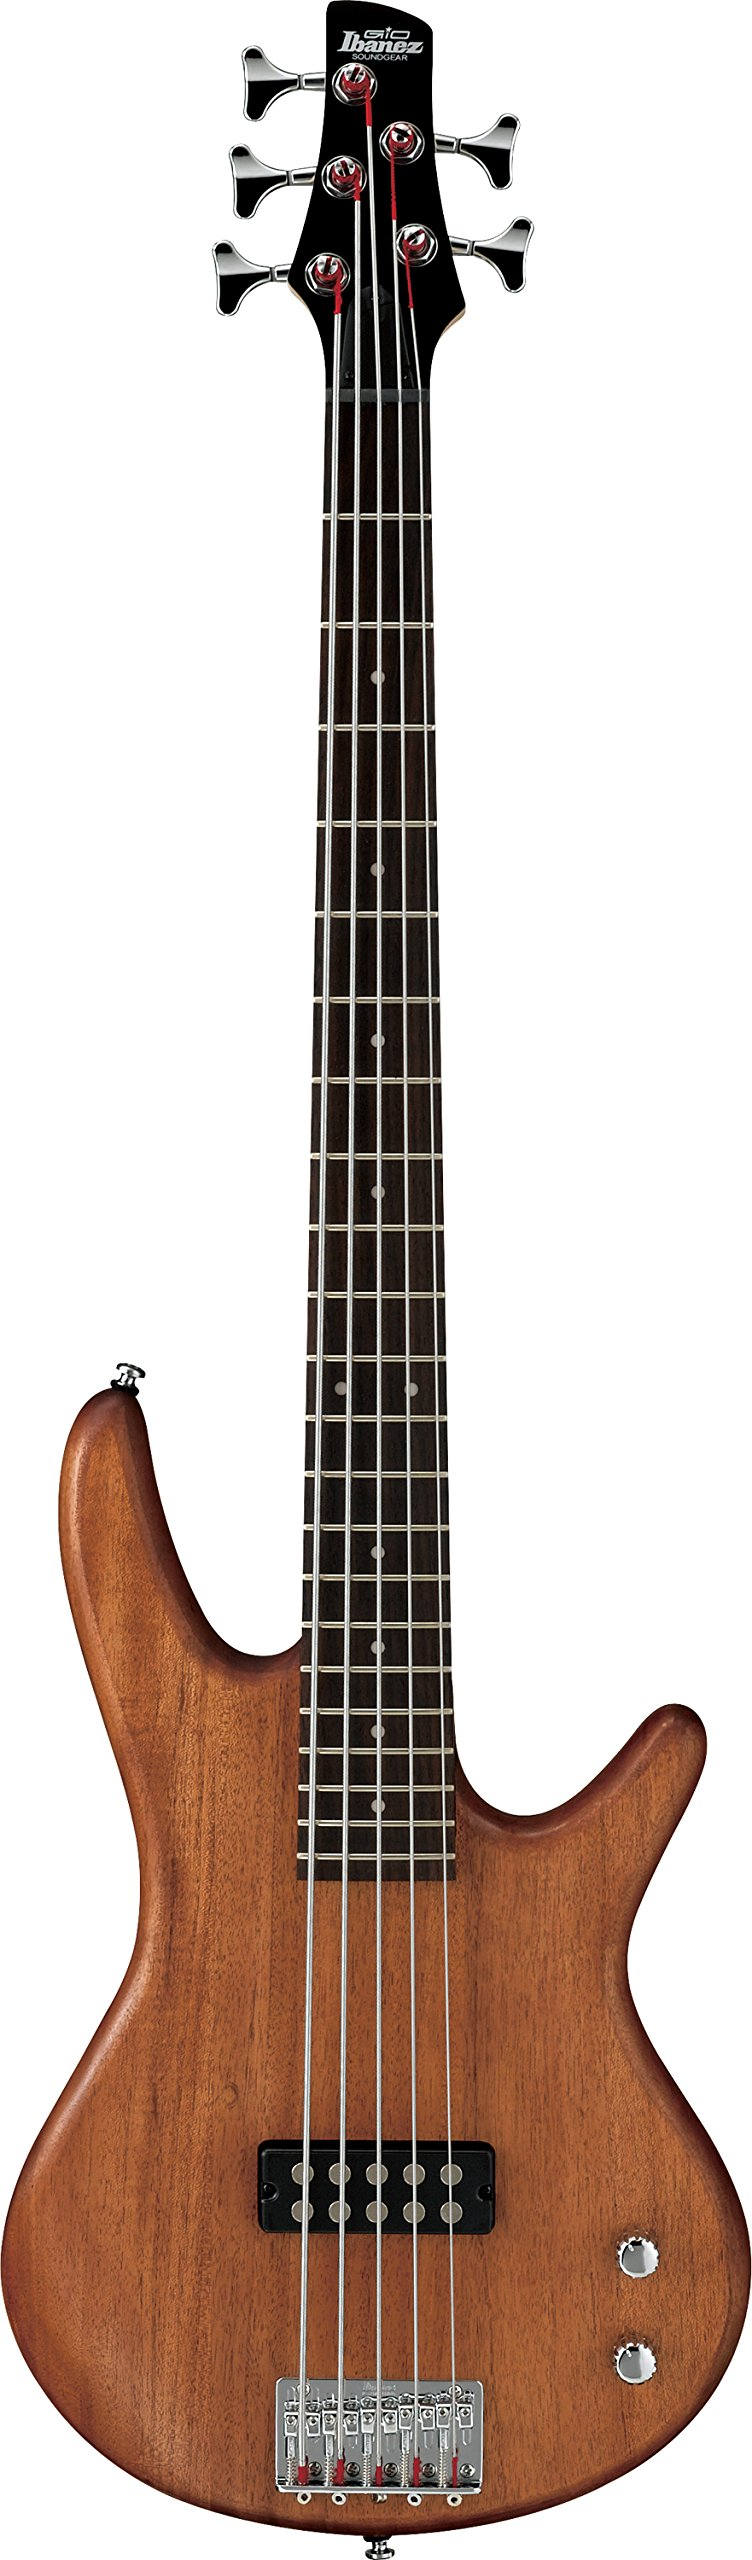 Ibanez 5 String Bass Guitar, Right, Mahogany Oil (GSR105EXMOL) by Ibanez (Image #1)